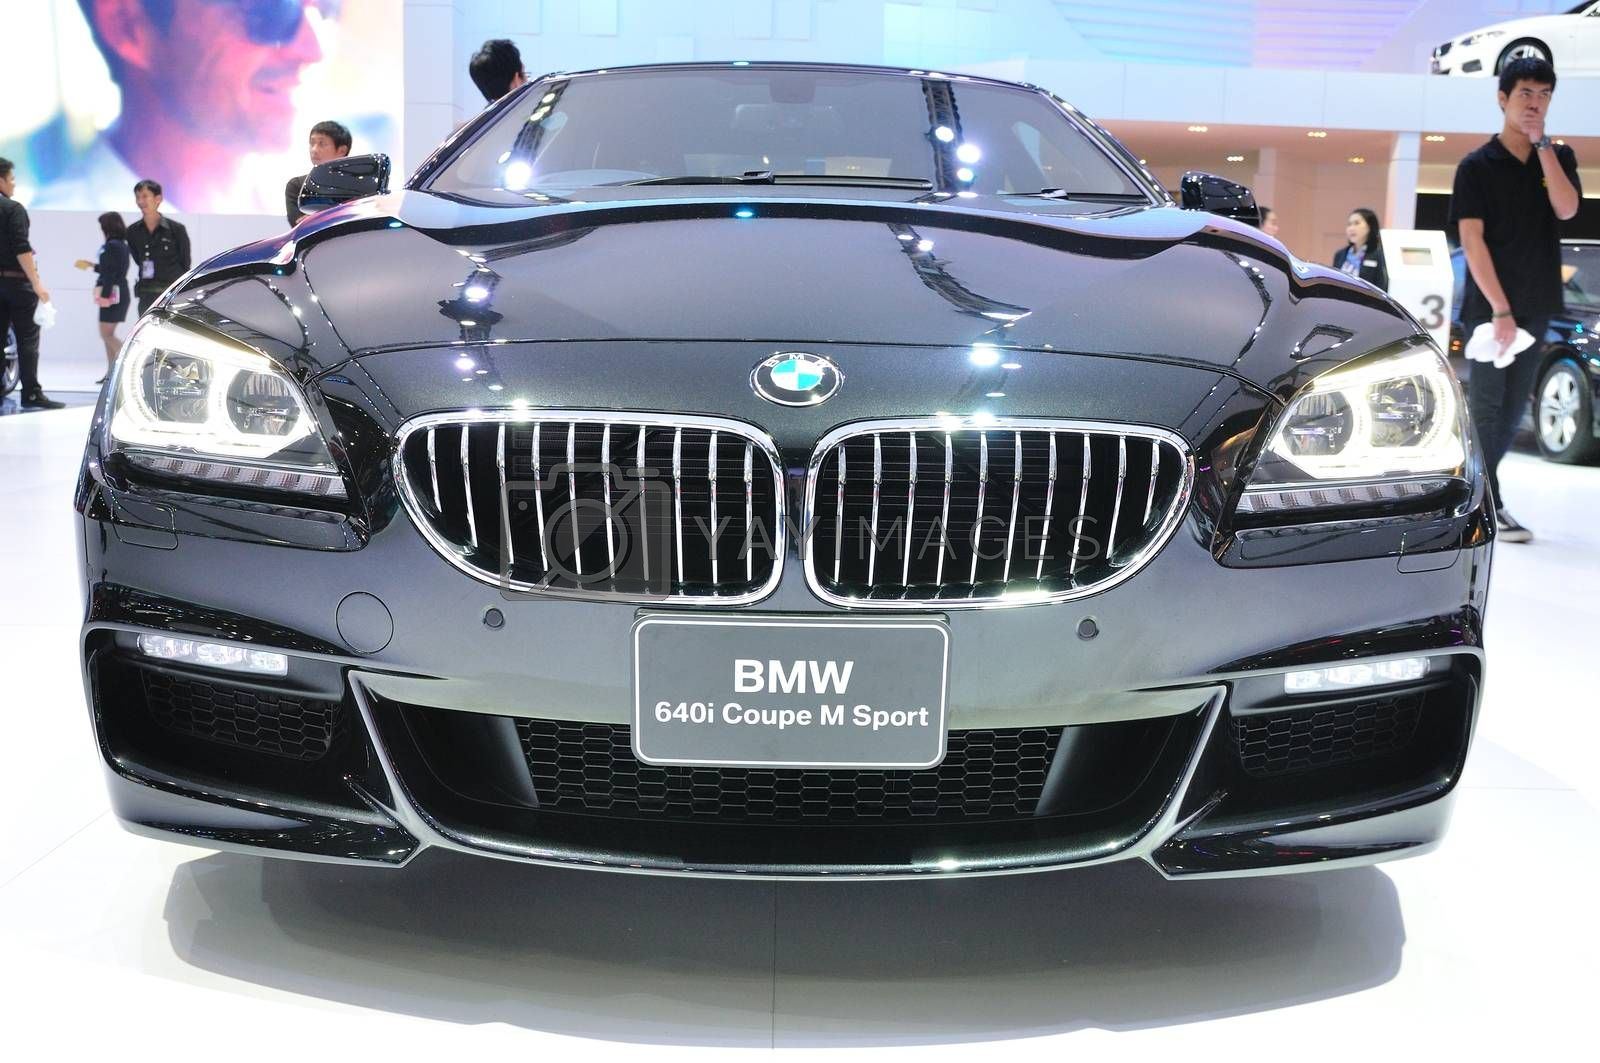 NONTHABURI - MARCH 25:NEW BM 640I coupe M sport on display at Th by thampapon